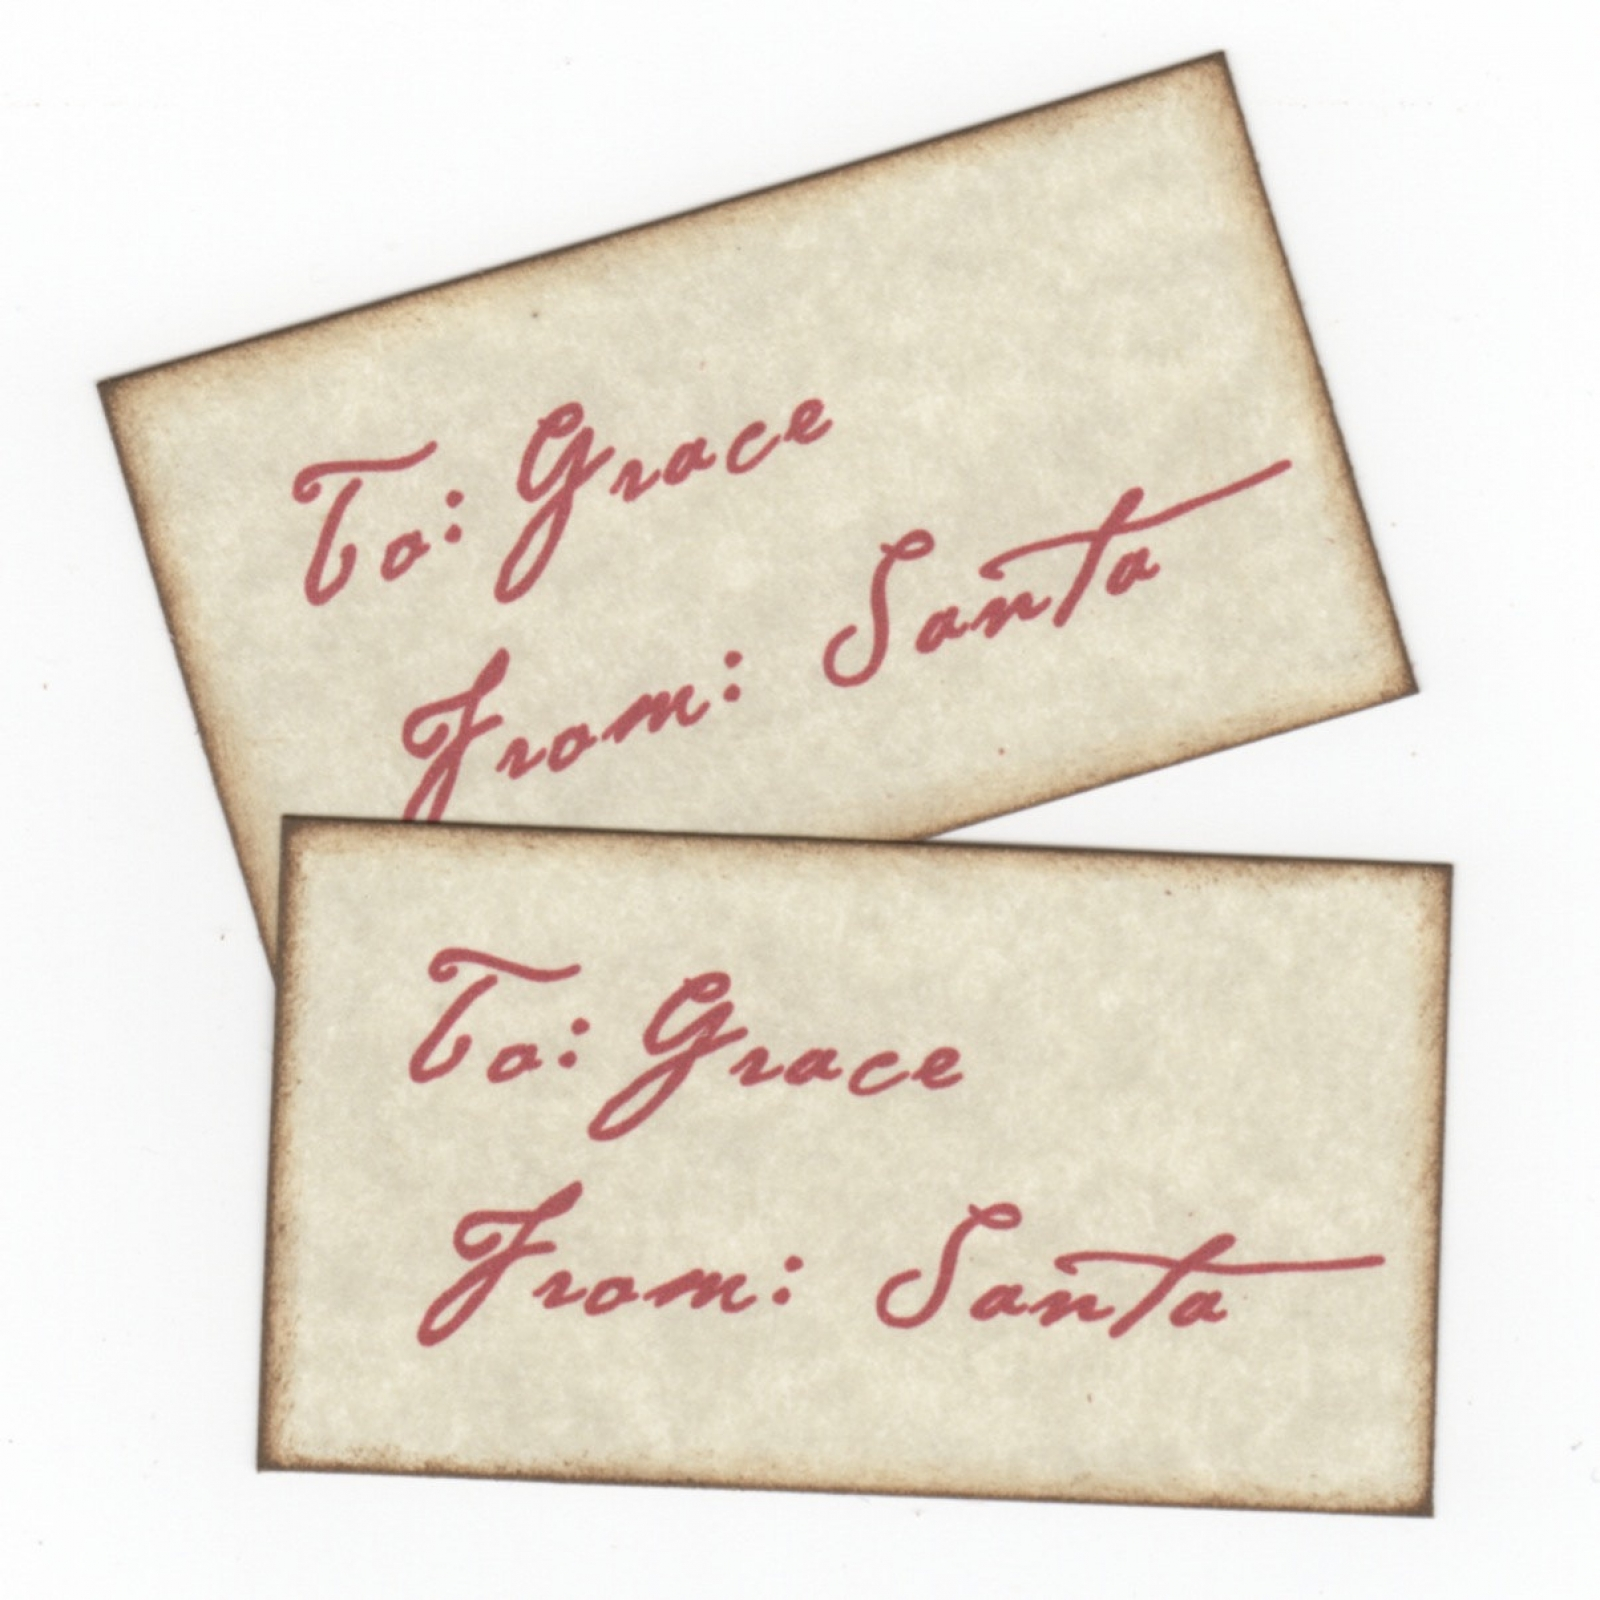 Personalized Christmas Gift Tags From Santa With Santa\'s Signature ...